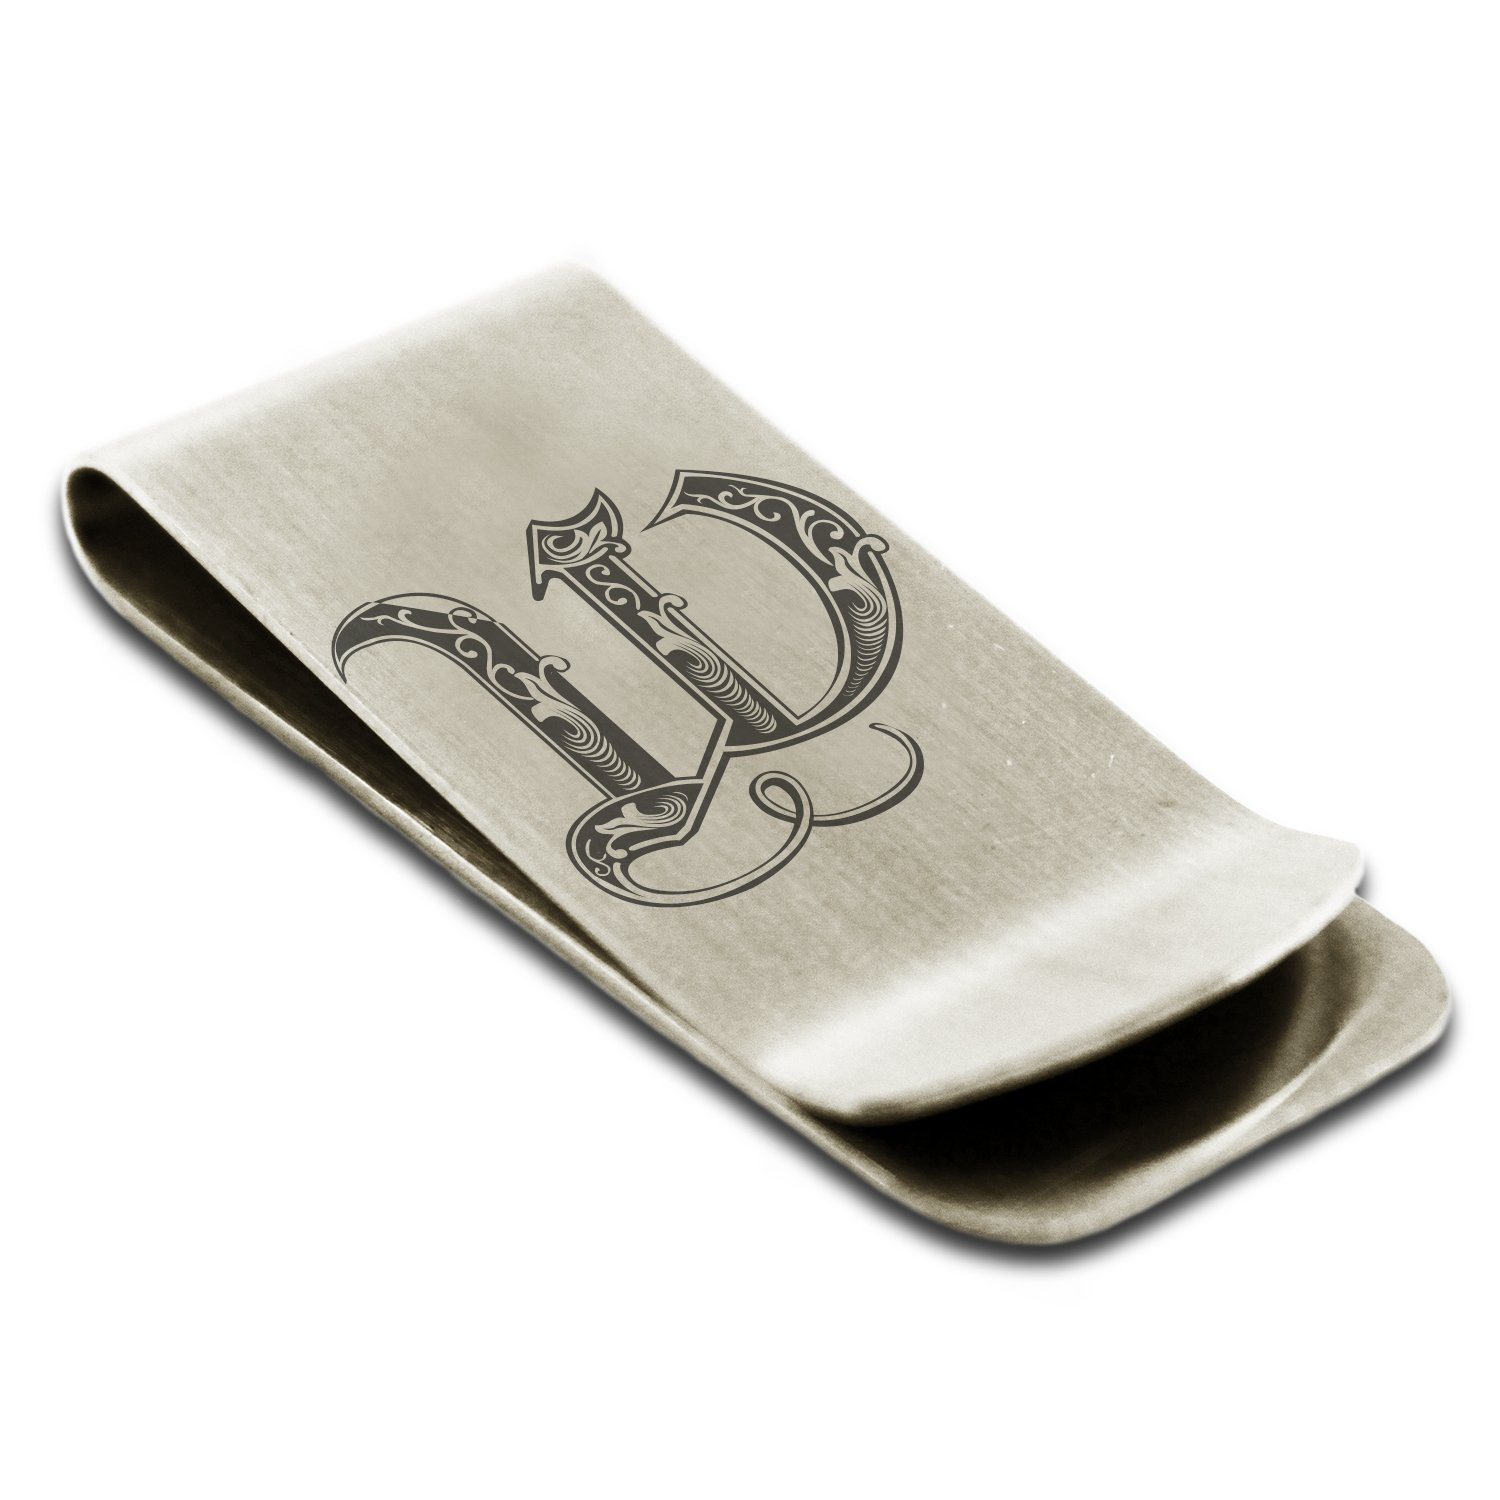 Stainless Steel Letter W Initial Royal Monogram Engraved Money Clip Credit Card Holder